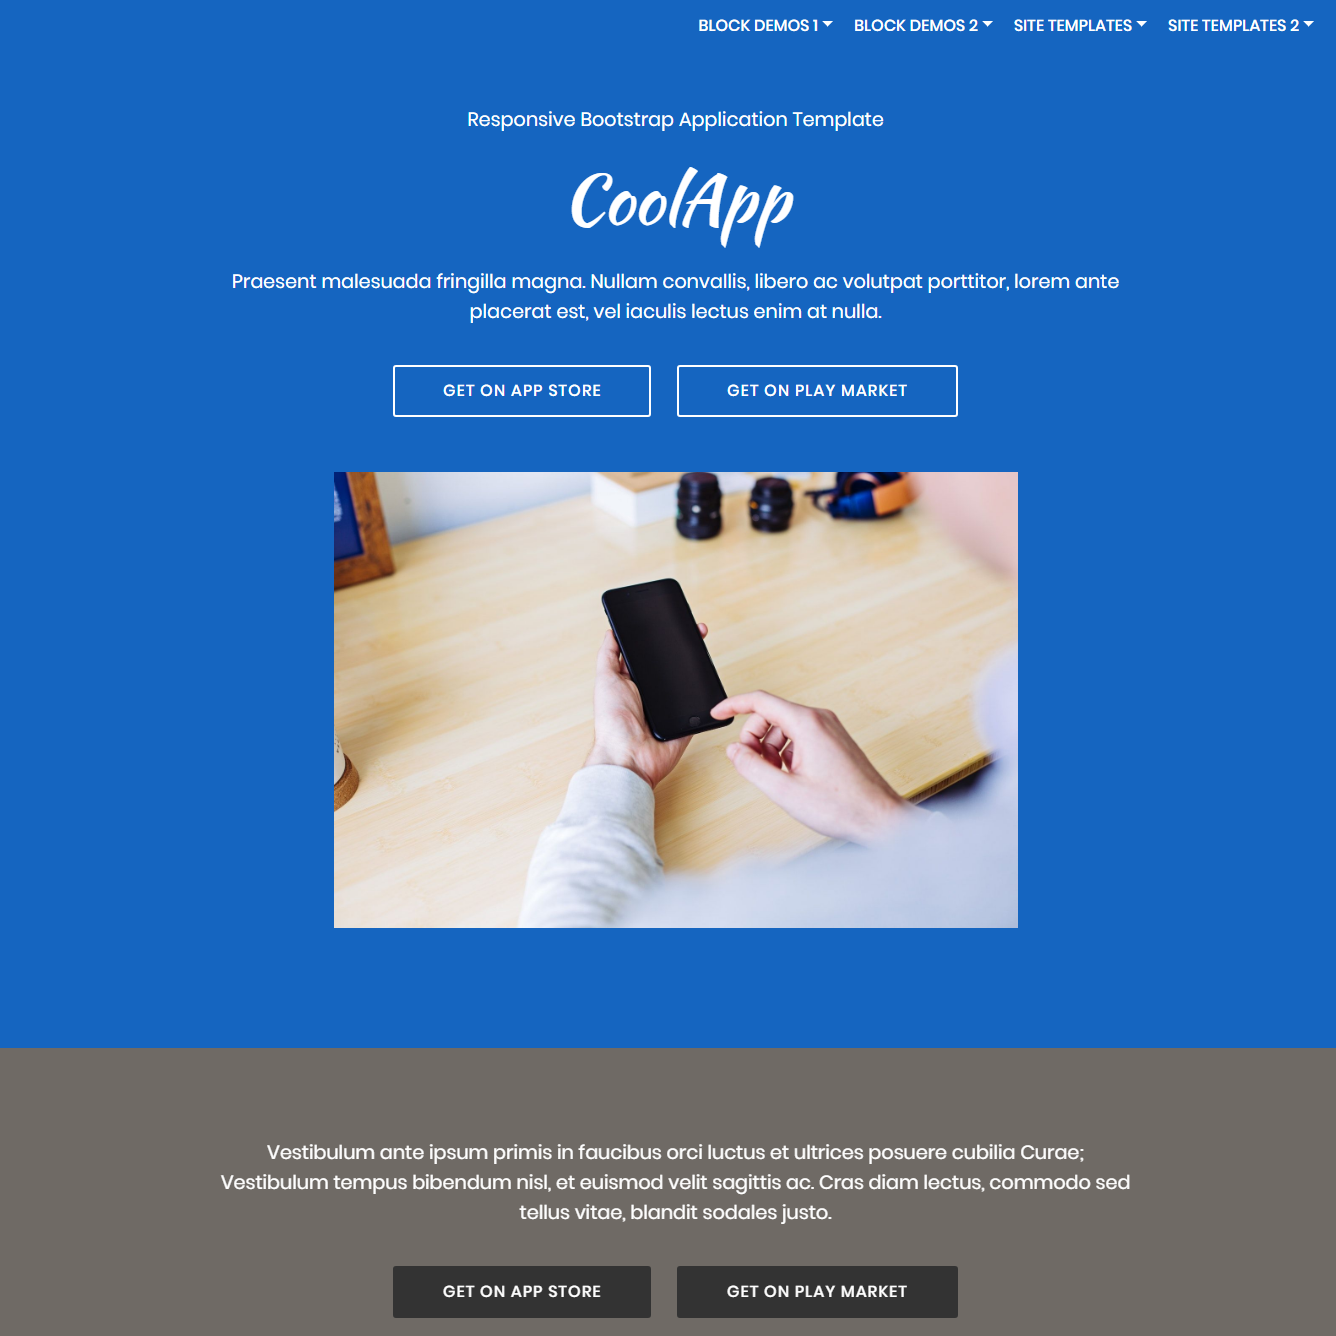 Responsive Bootstrap Application Templates